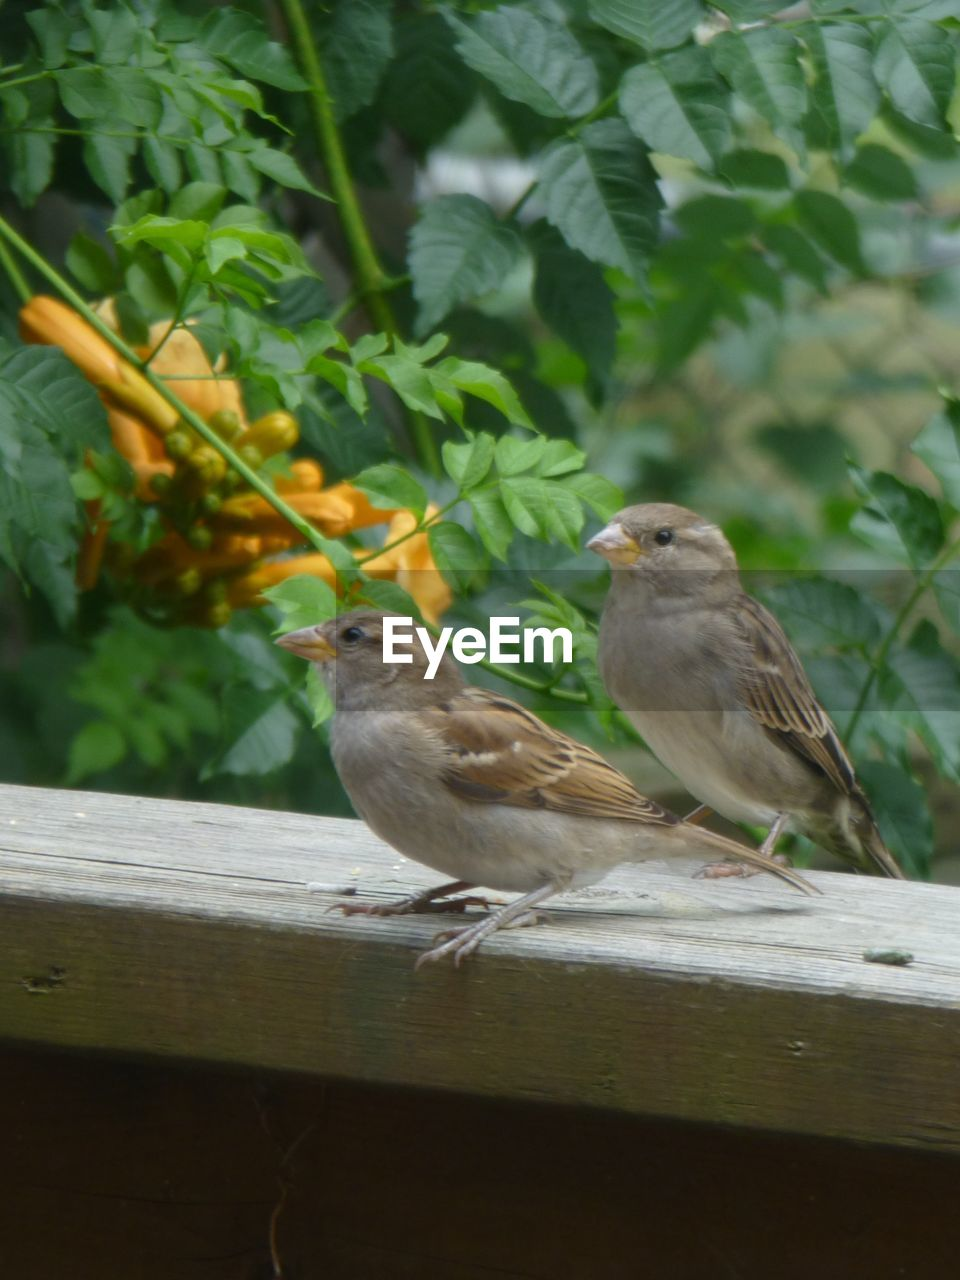 bird, animal, vertebrate, animal themes, animals in the wild, animal wildlife, group of animals, perching, two animals, sparrow, day, nature, no people, focus on foreground, wood - material, plant, outdoors, plant part, green color, leaf